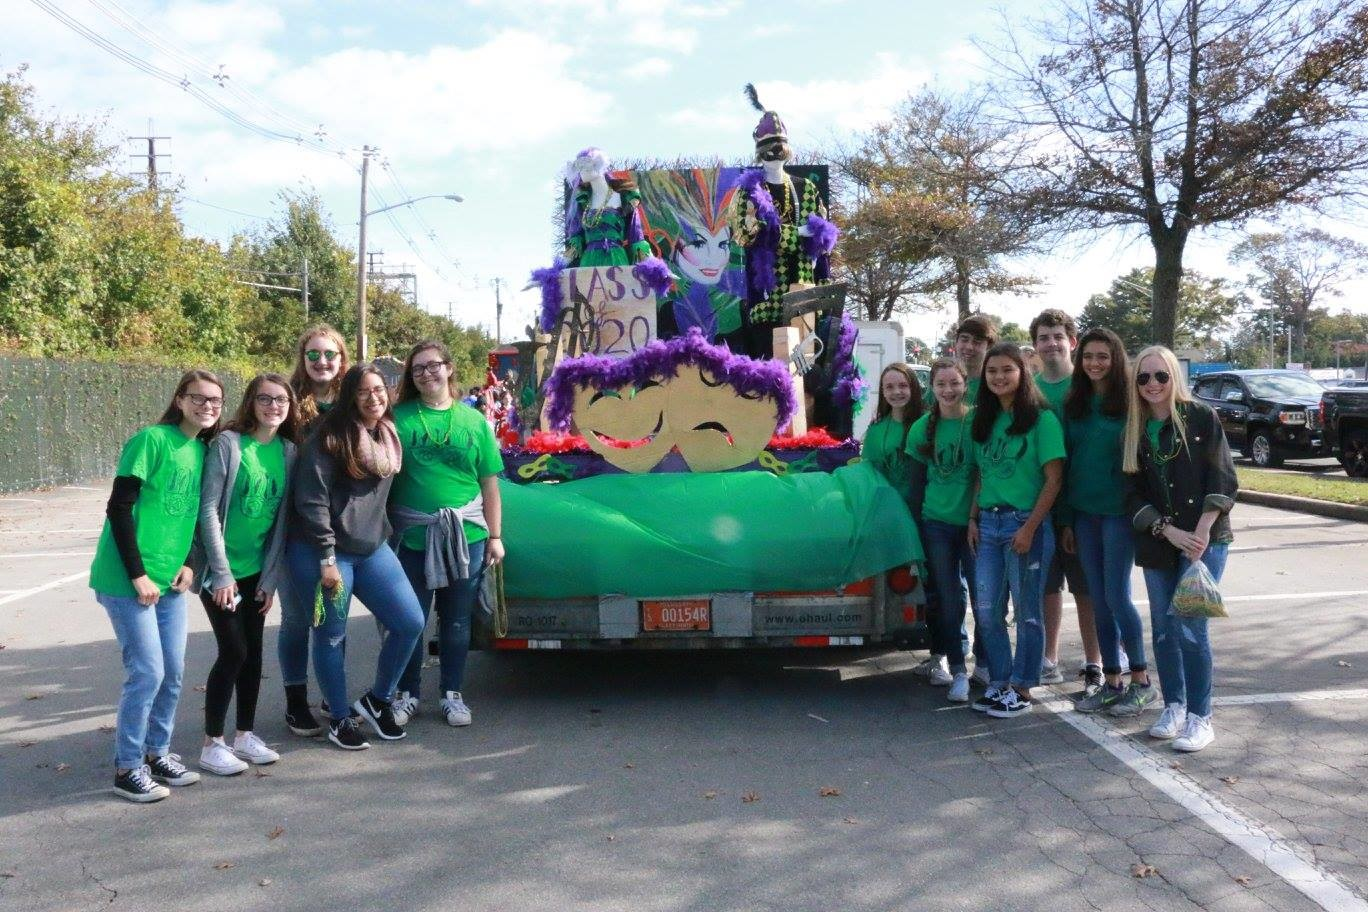 Sophomores were proud of their self-proclaimed messy, over-the-top Mardi Gras float.